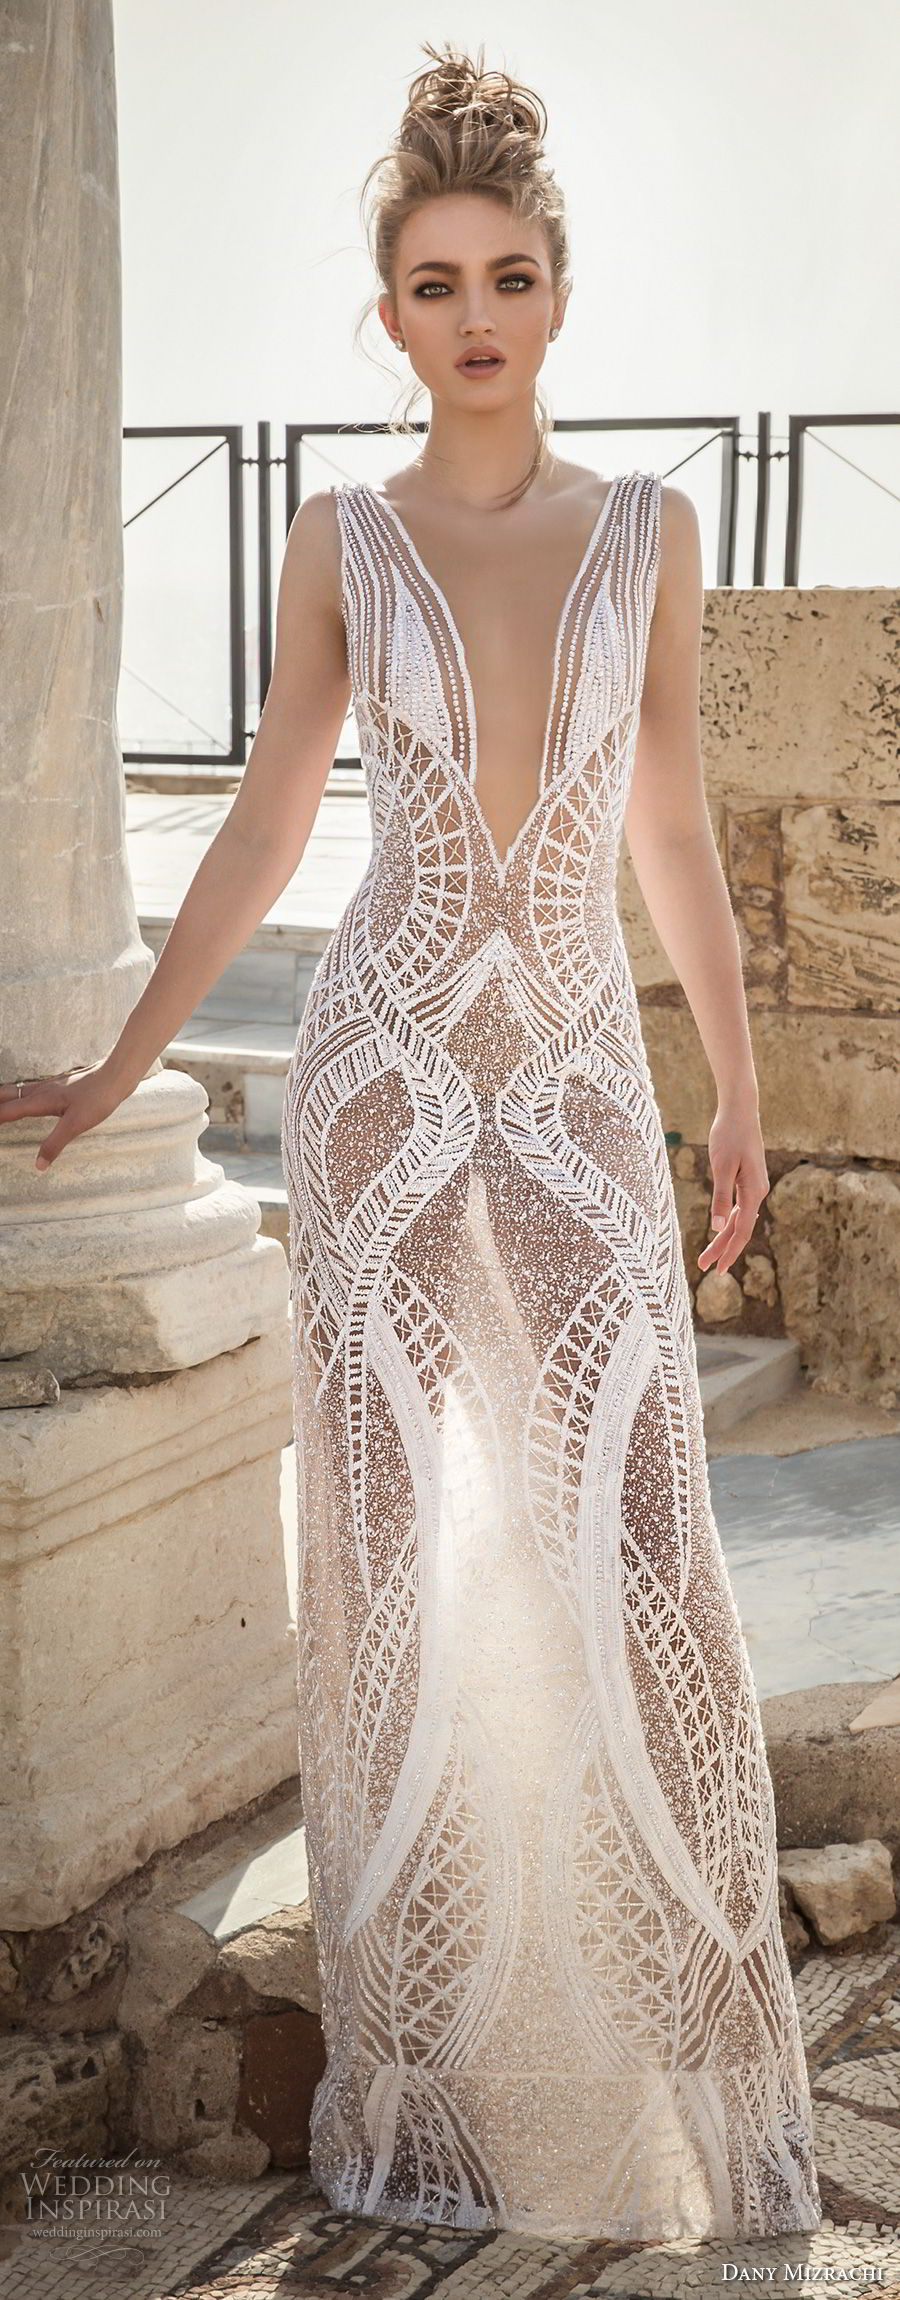 dany mizrachi 2018 bridal sleeveless deep plunging v neckline full embellishment geomatric pattern sexy column wedding dress (13) mv